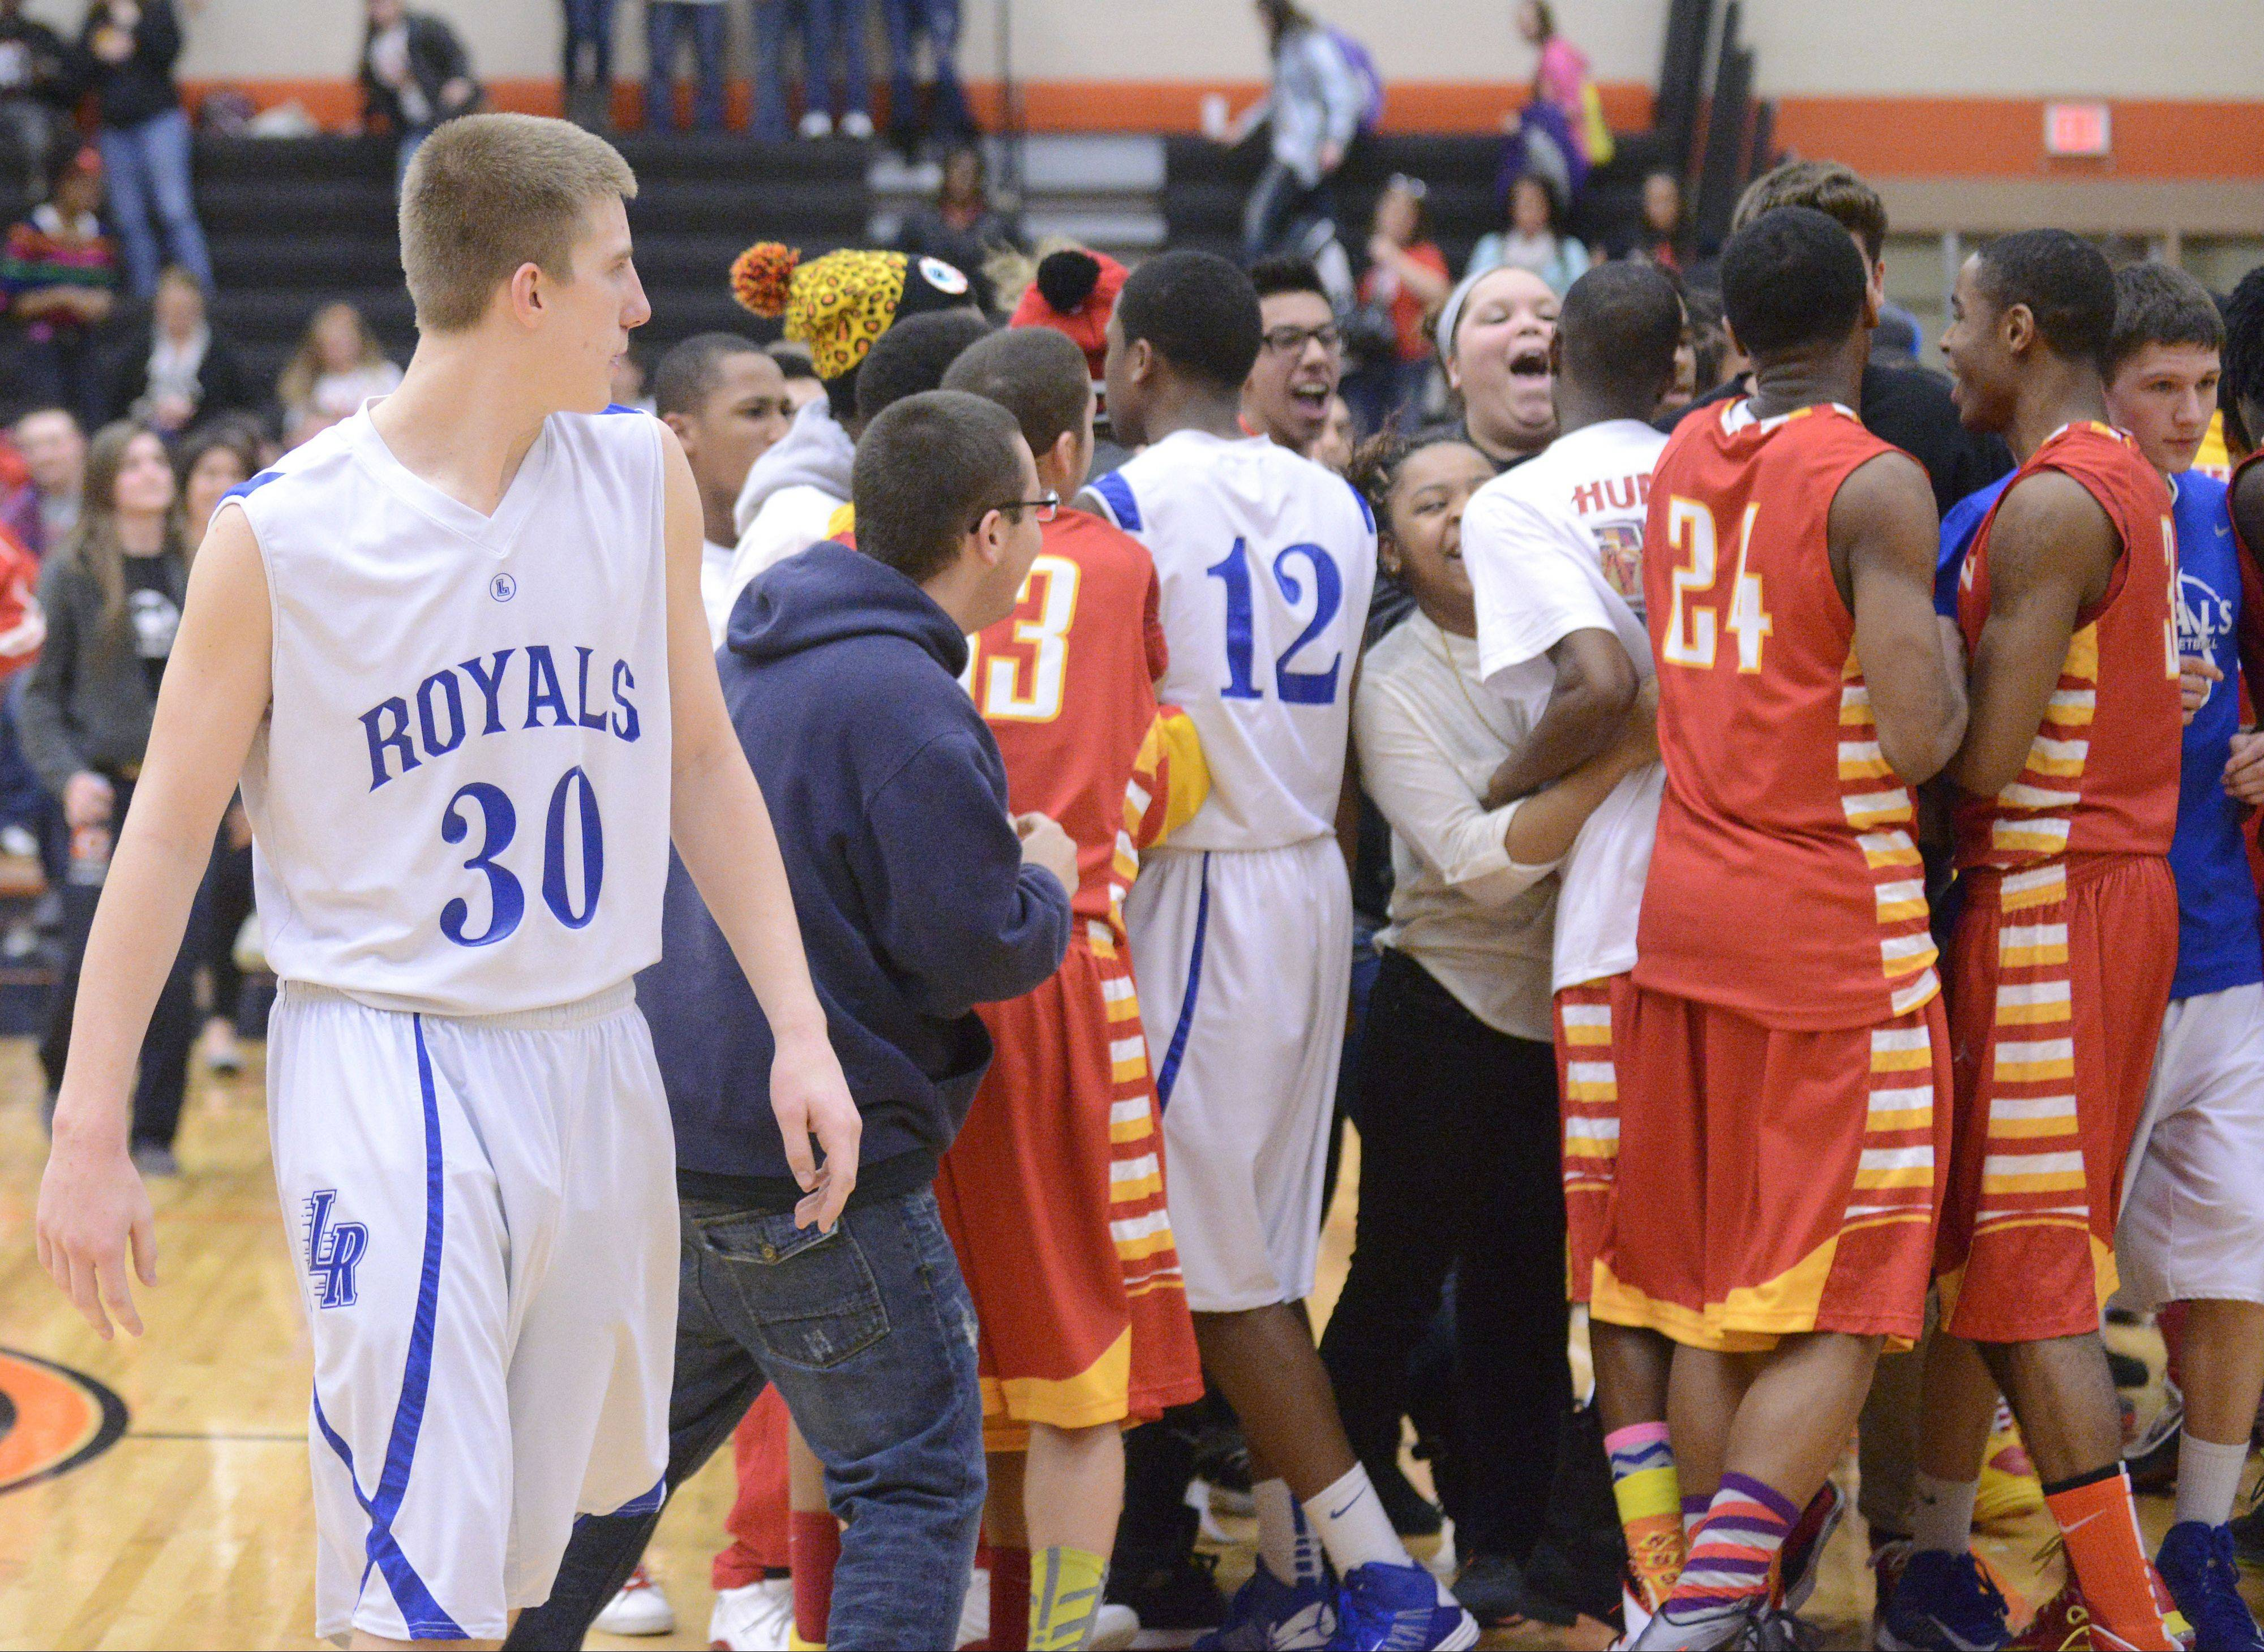 Larkin's Brayden Royse (30) walks among celebrating teammates and fans from Rockford Jefferson, as his own teammate, Hannibal Marshall, 12, gets caught up in the crowd, after the Royals' loss to the J-Hawks in the Class 4A DeKalb sectional semifinals on Wednesday.